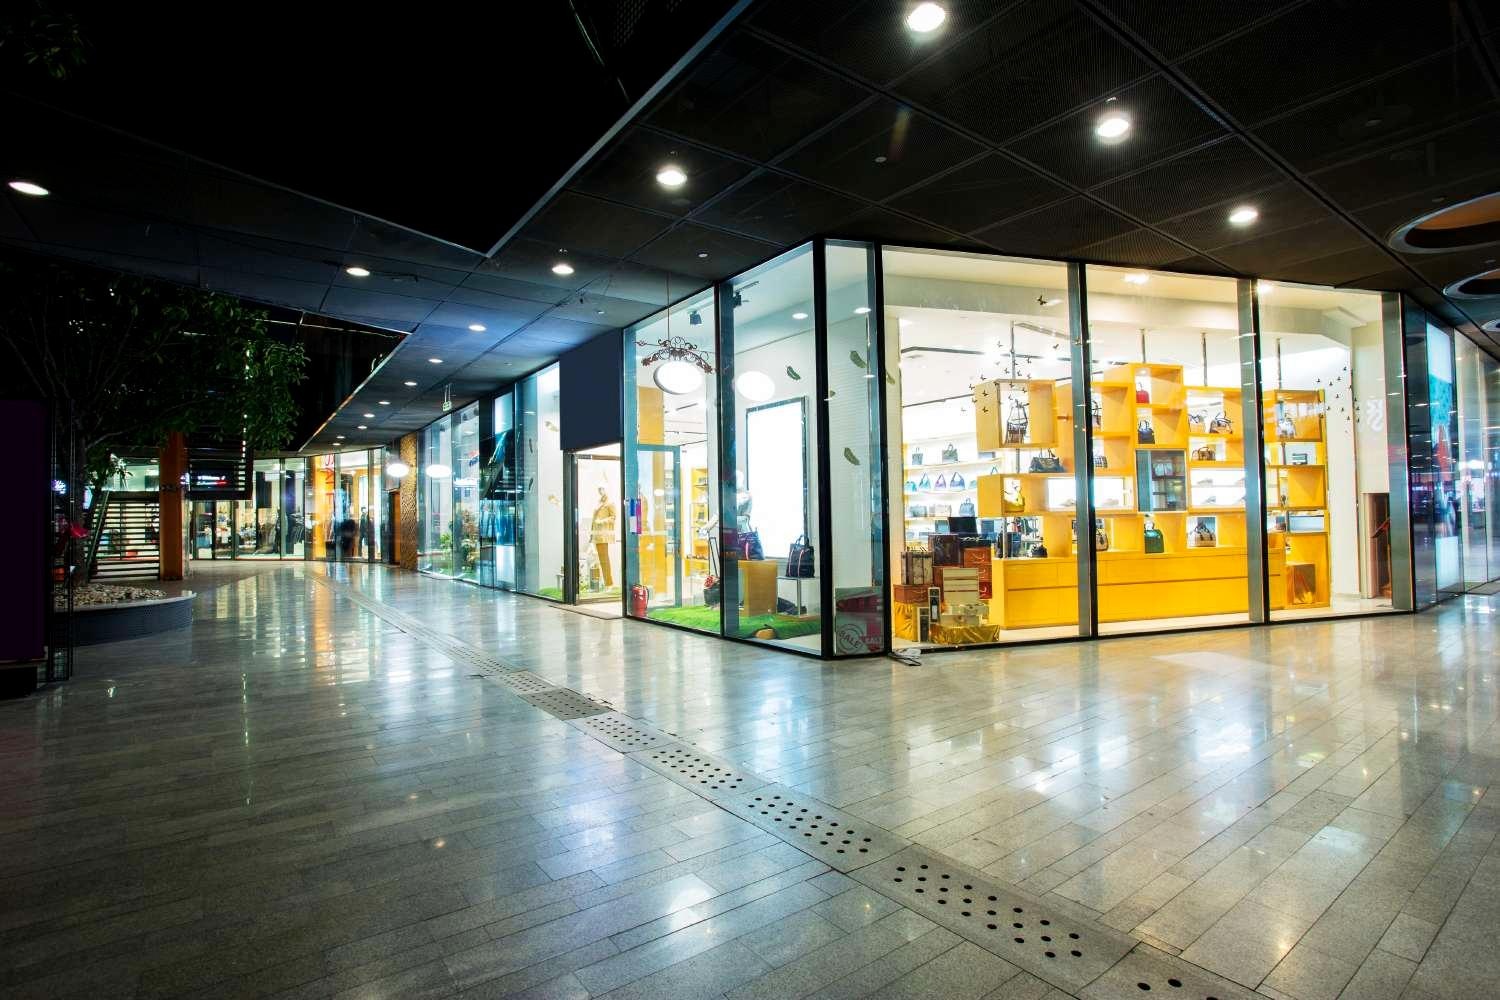 Storefront in a shopping mall at night